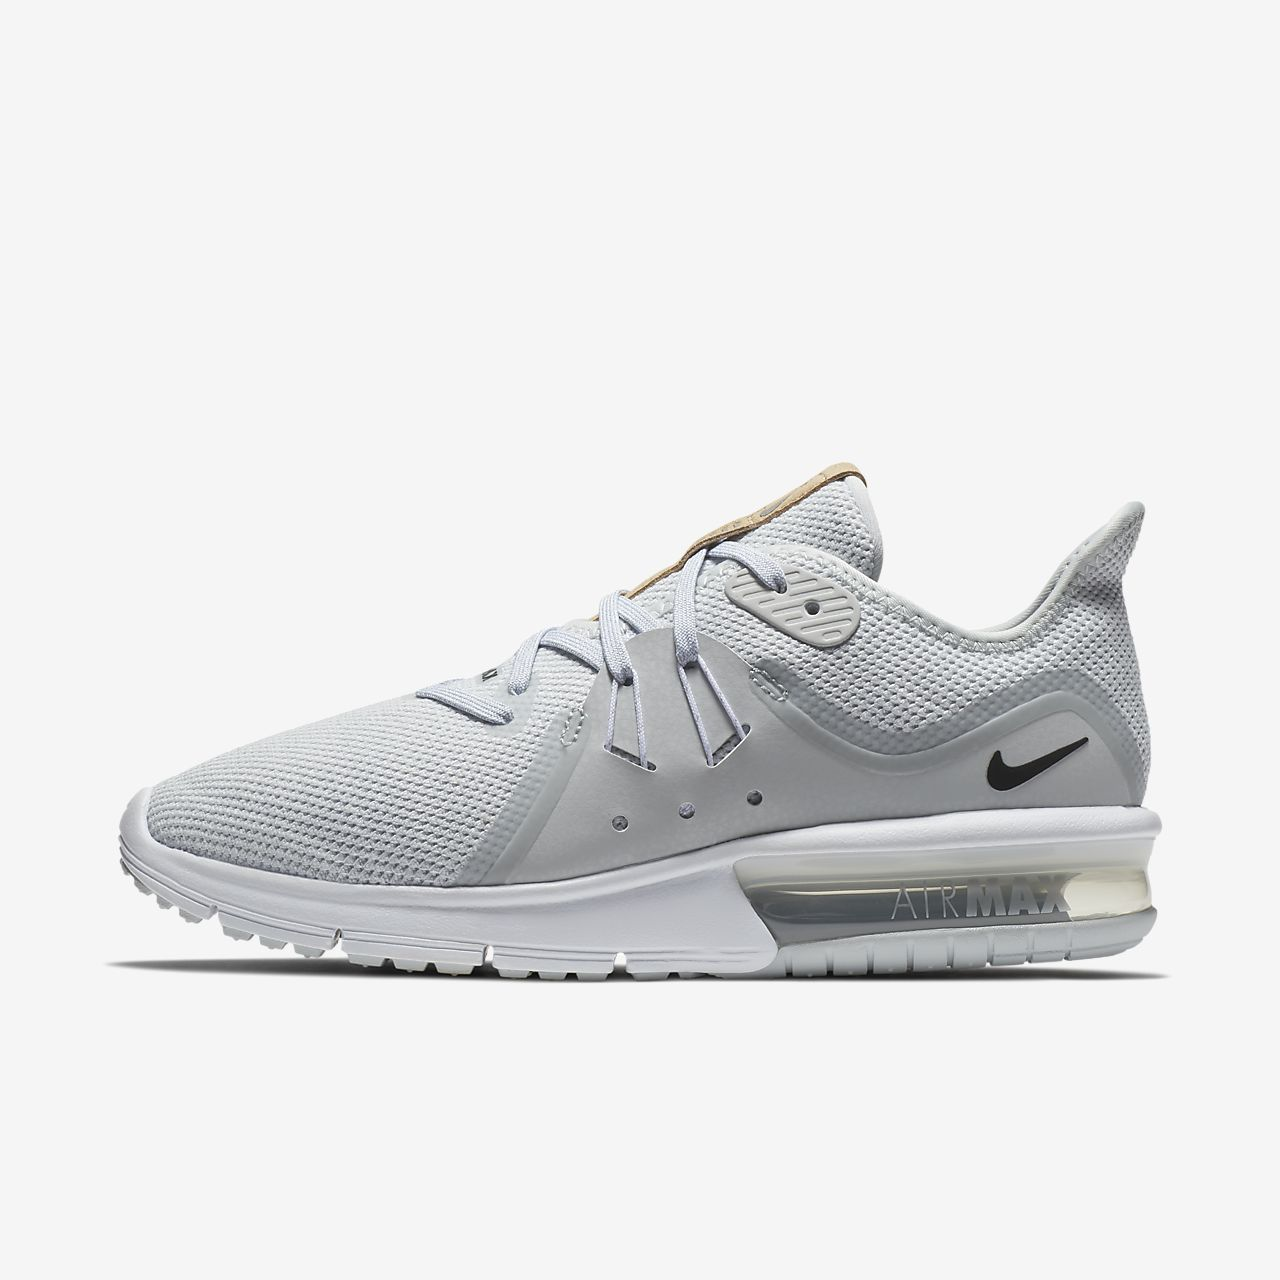 buy popular 76119 87cb6 ... Nike Air Max Sequent 3 Women s Shoe